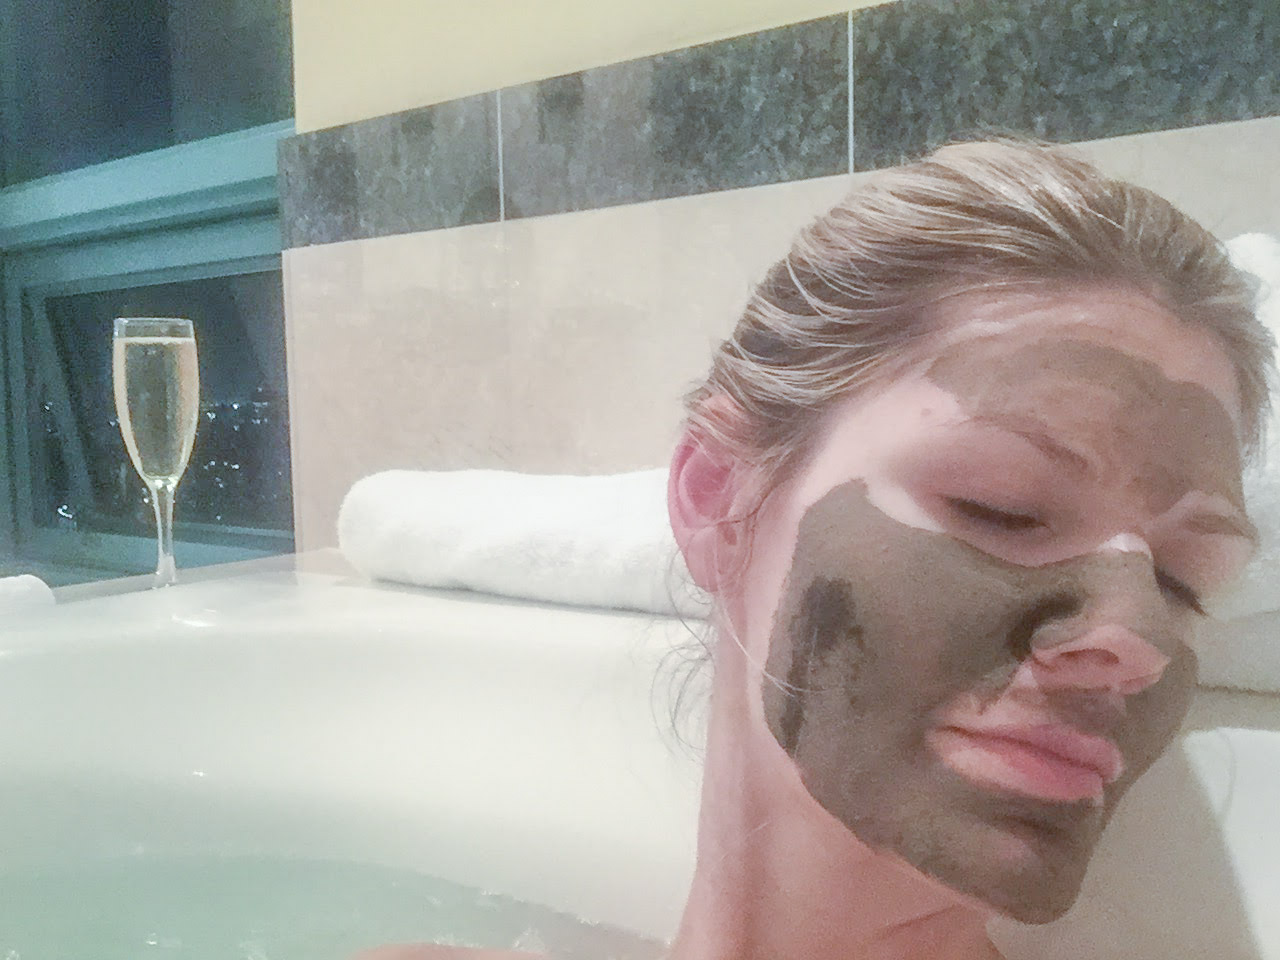 Relaxing with a May Lindstrom Problem Solver Face Mask to brighten skin